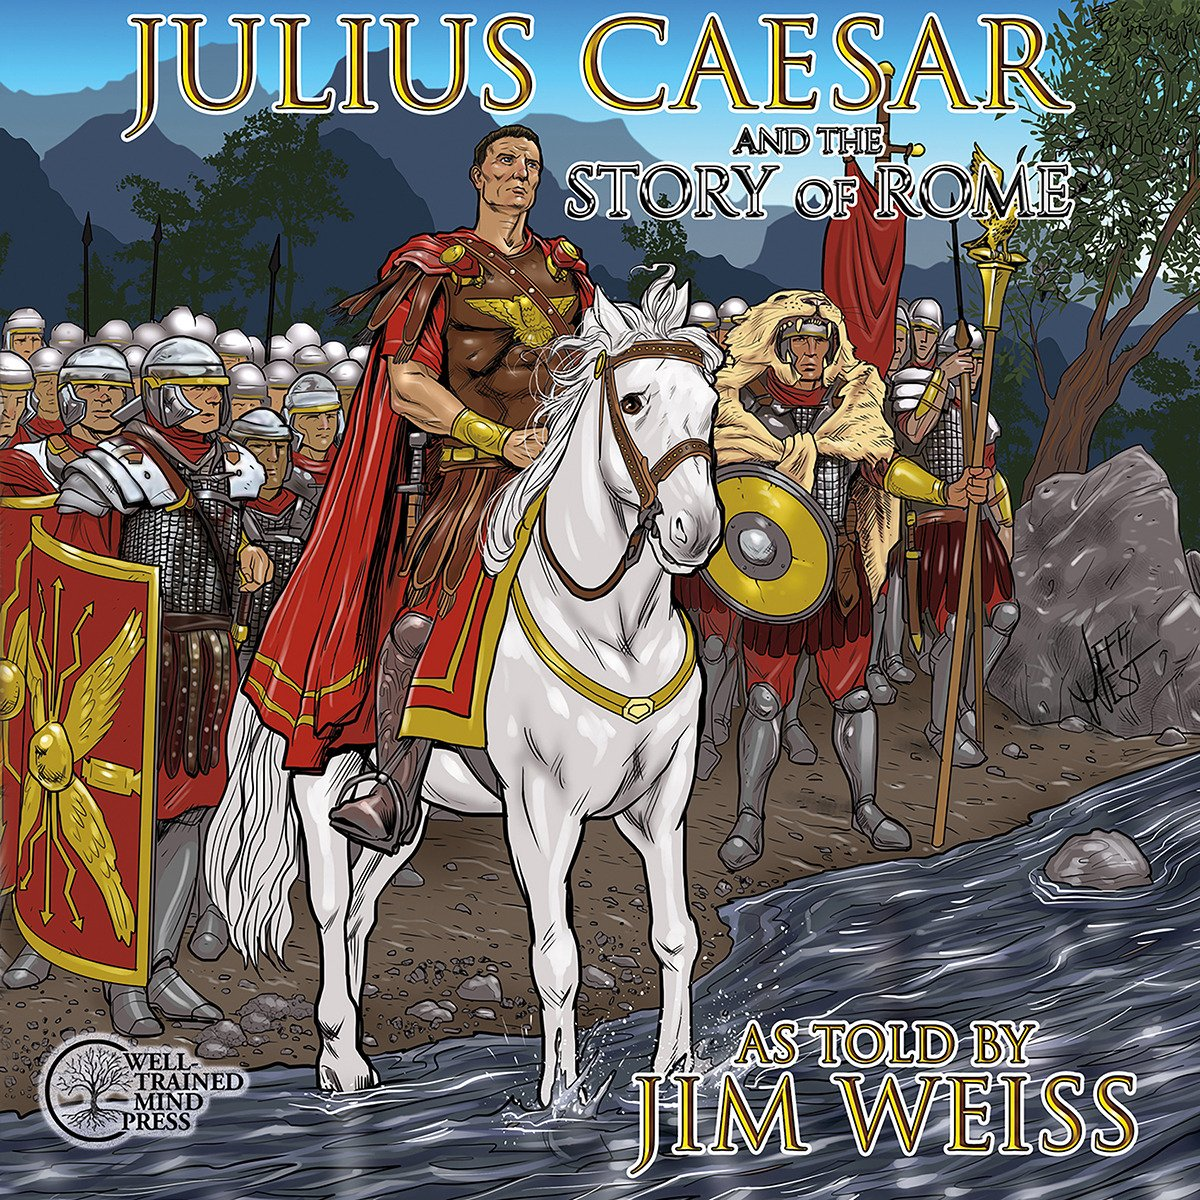 Julius Caesar & The Story of Rome